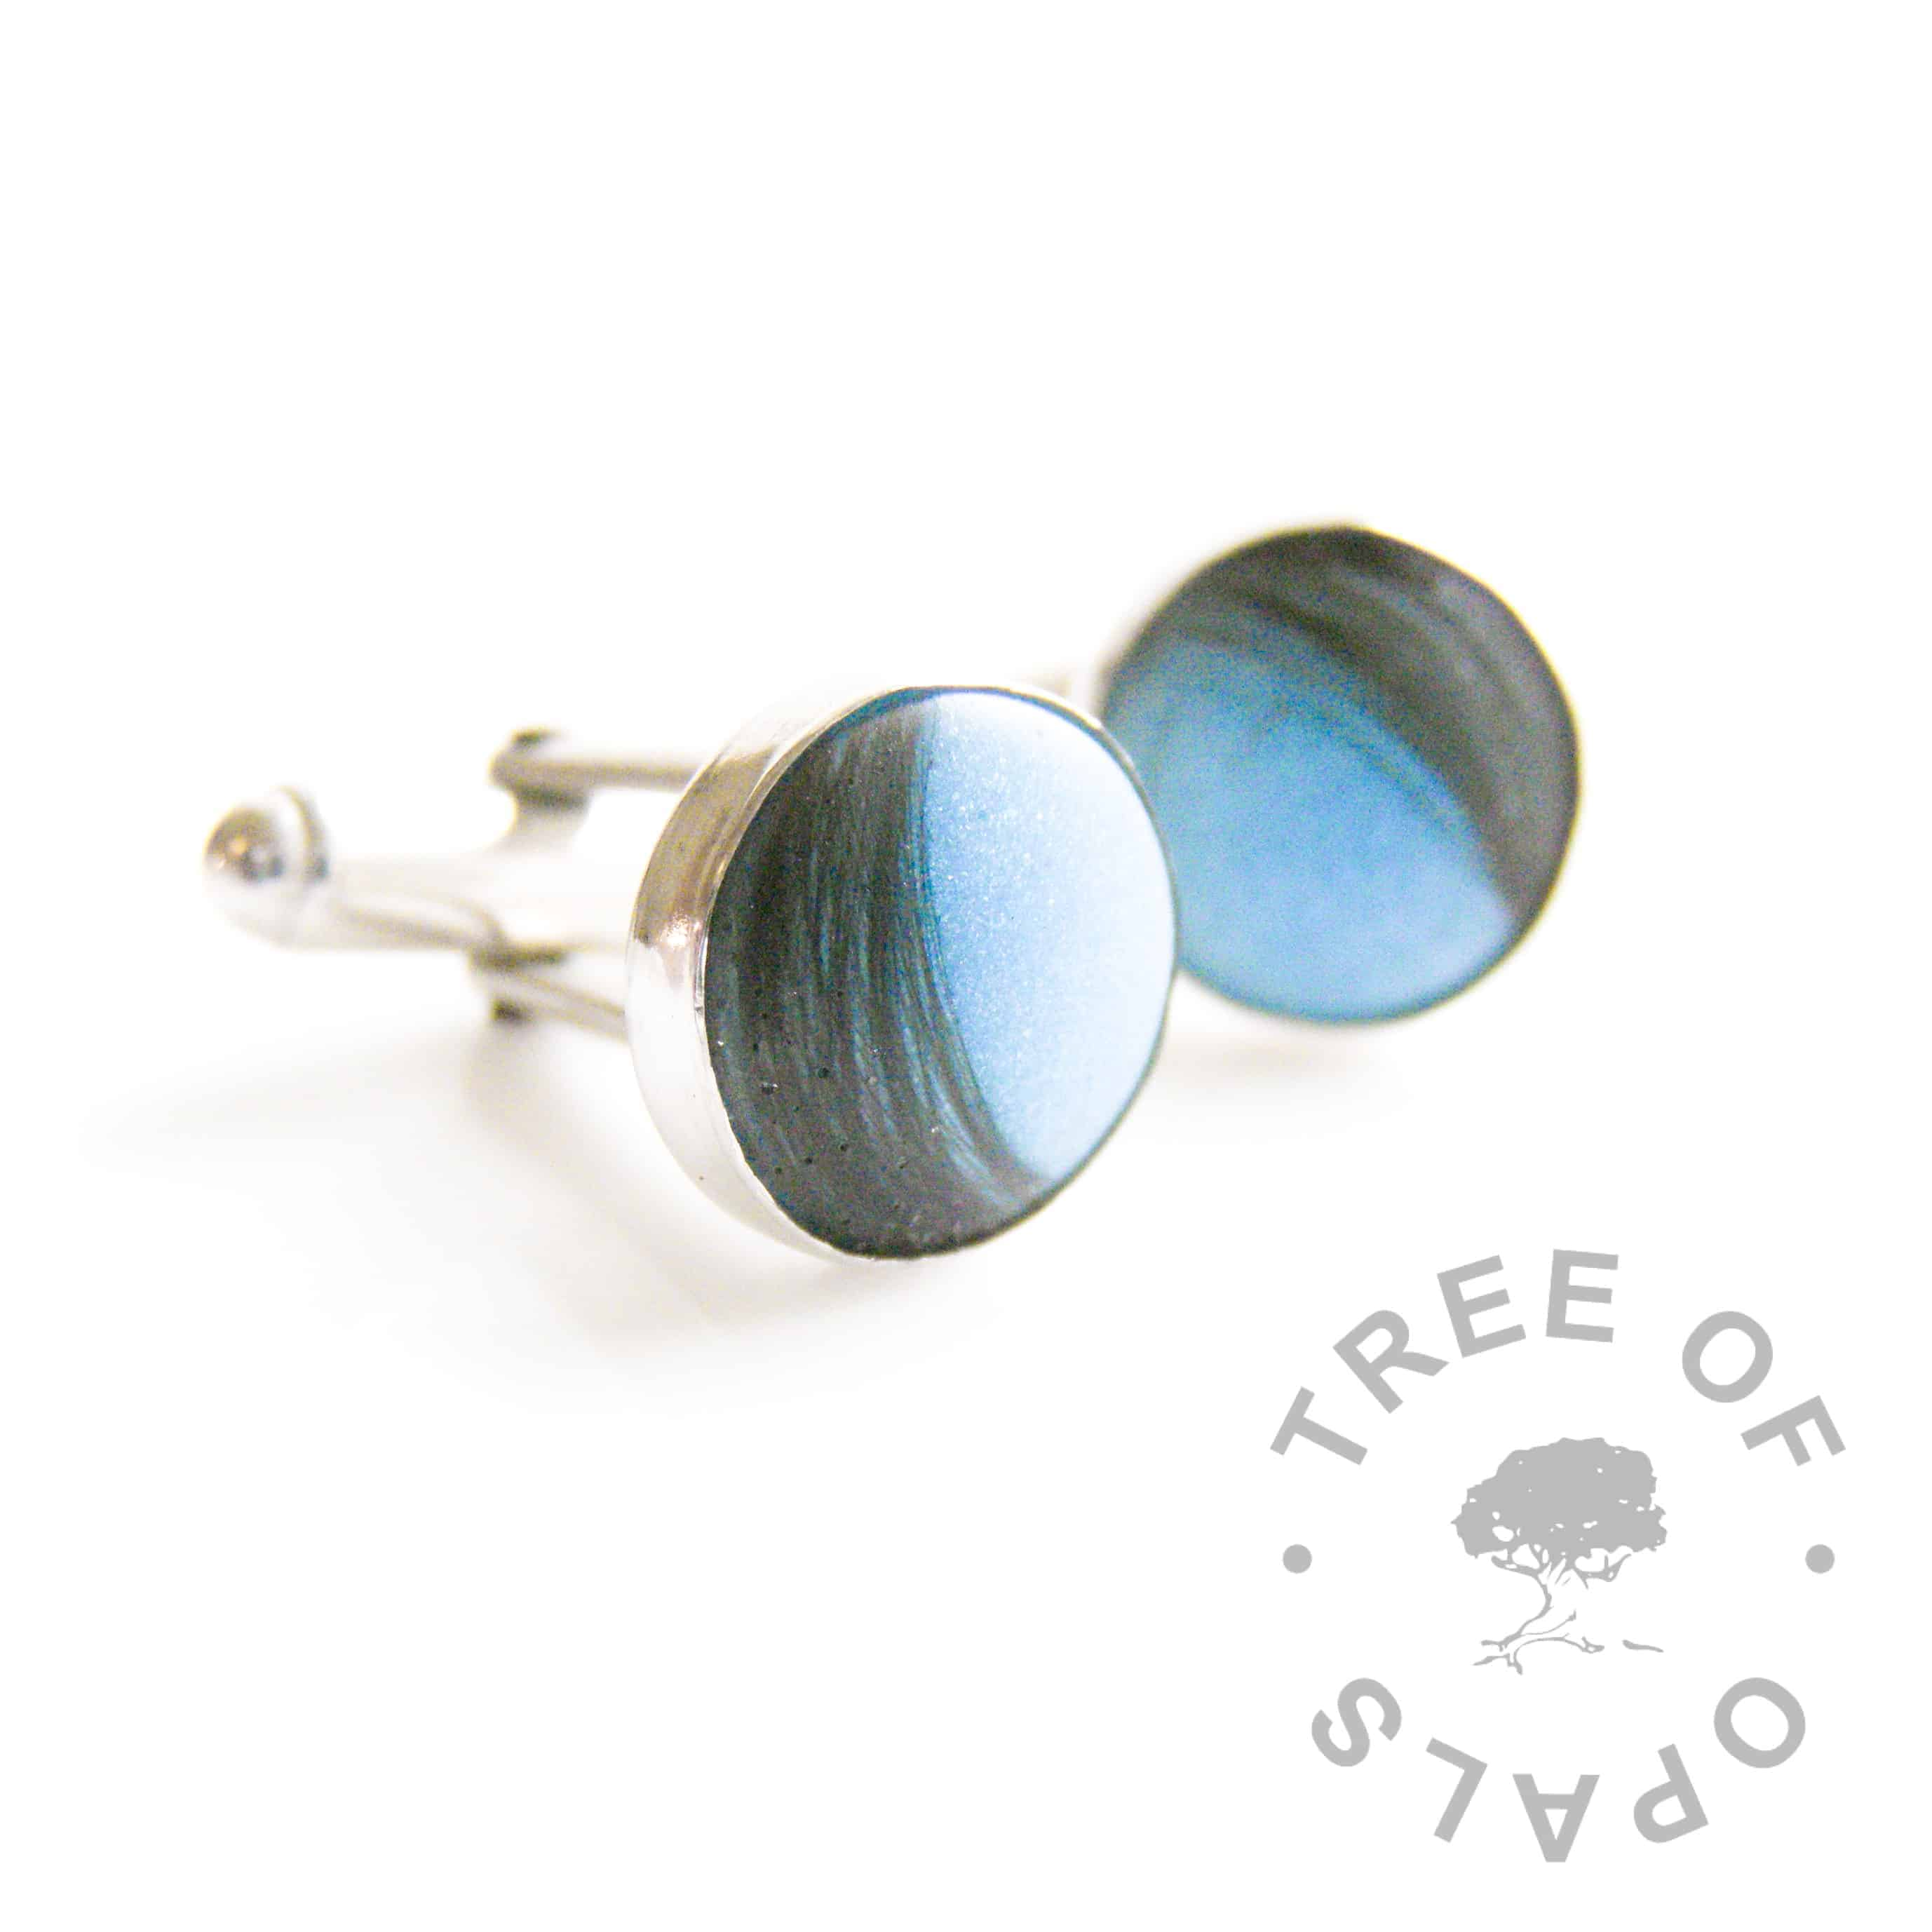 lock of hair cufflinks with blue shimmer resin and matte finish